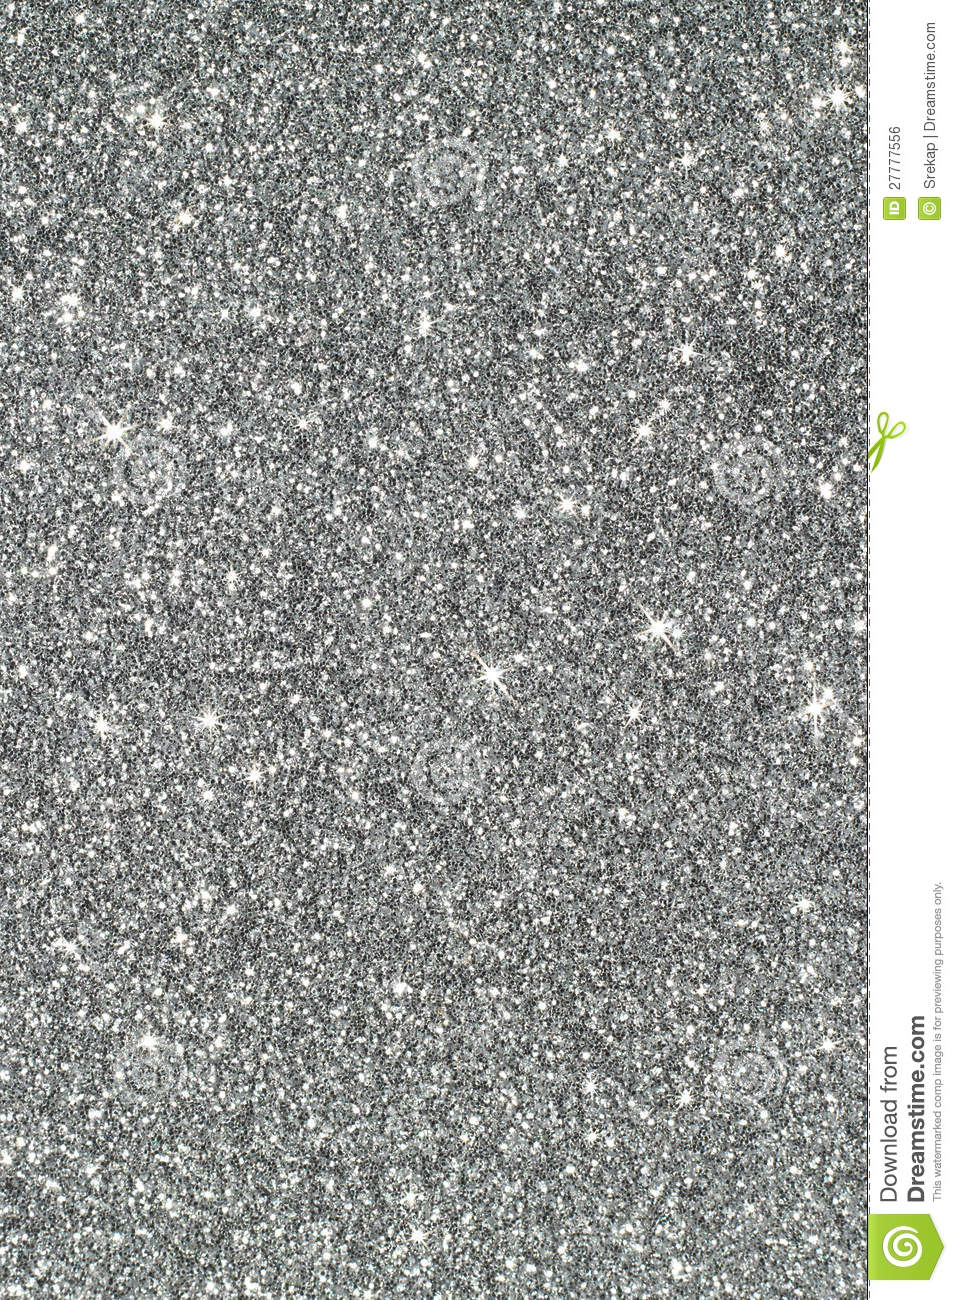 silver glitter background stock photo  image of shiny